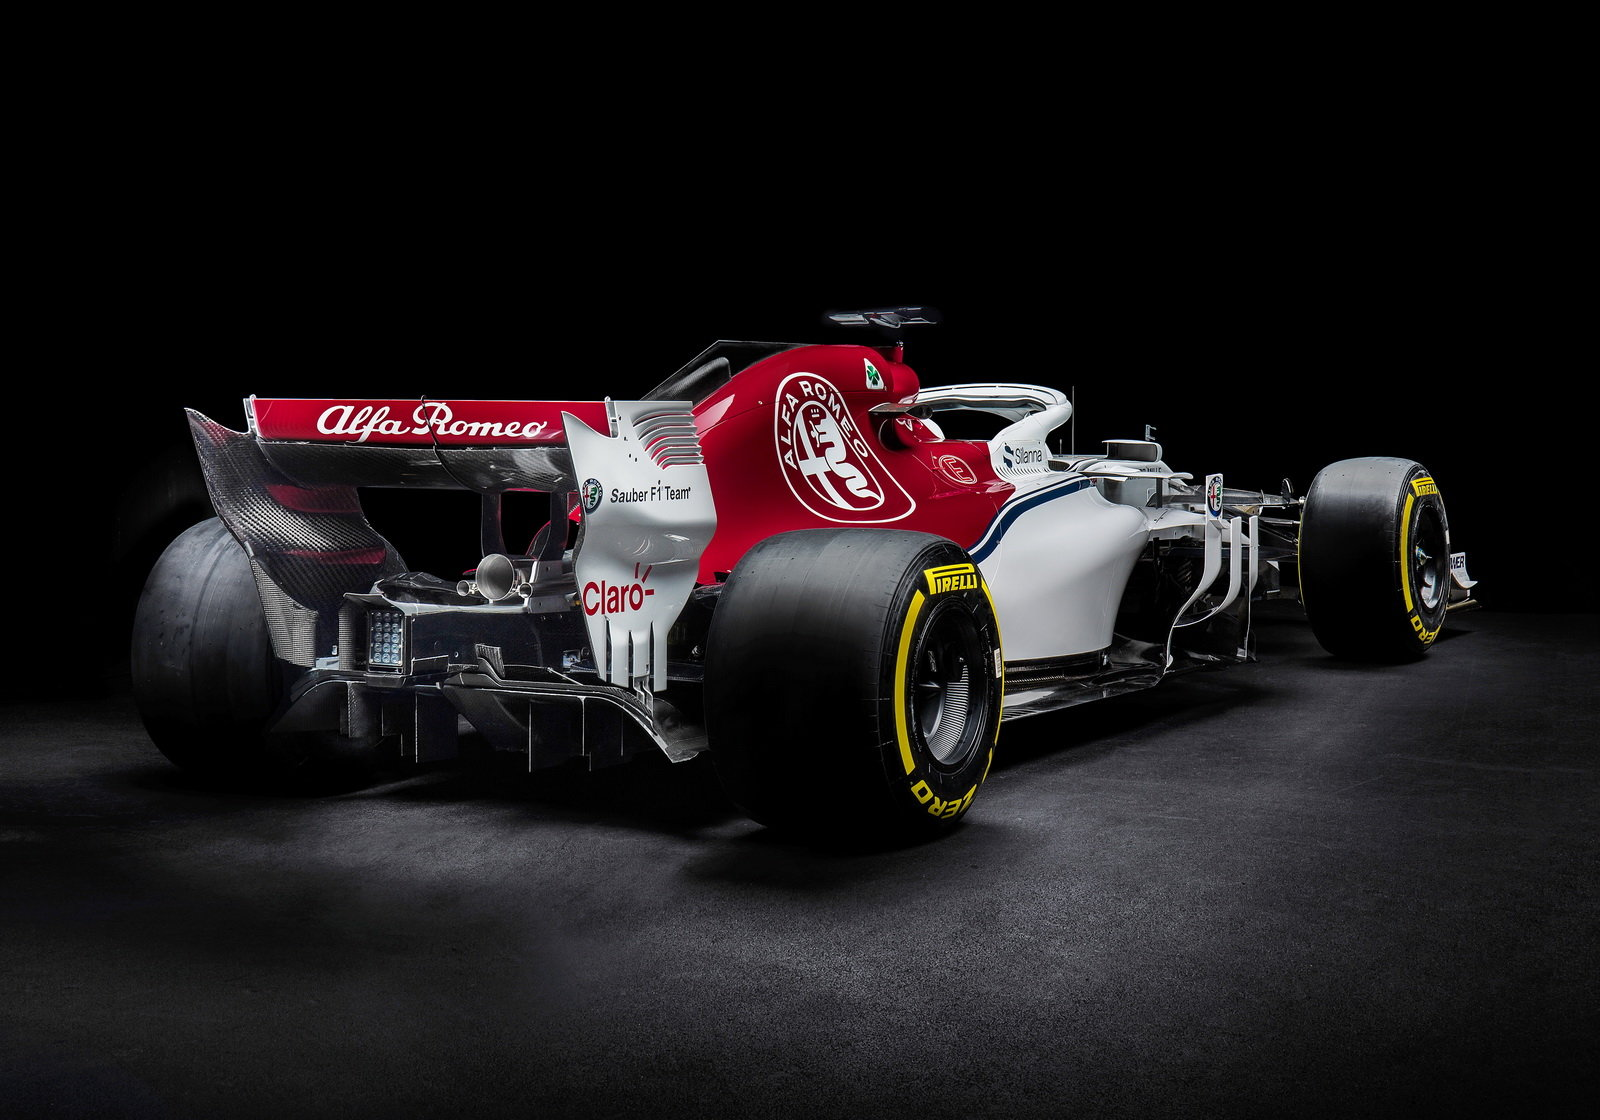 foto ecco l alfa romeo sauber per la f1 2018. Black Bedroom Furniture Sets. Home Design Ideas